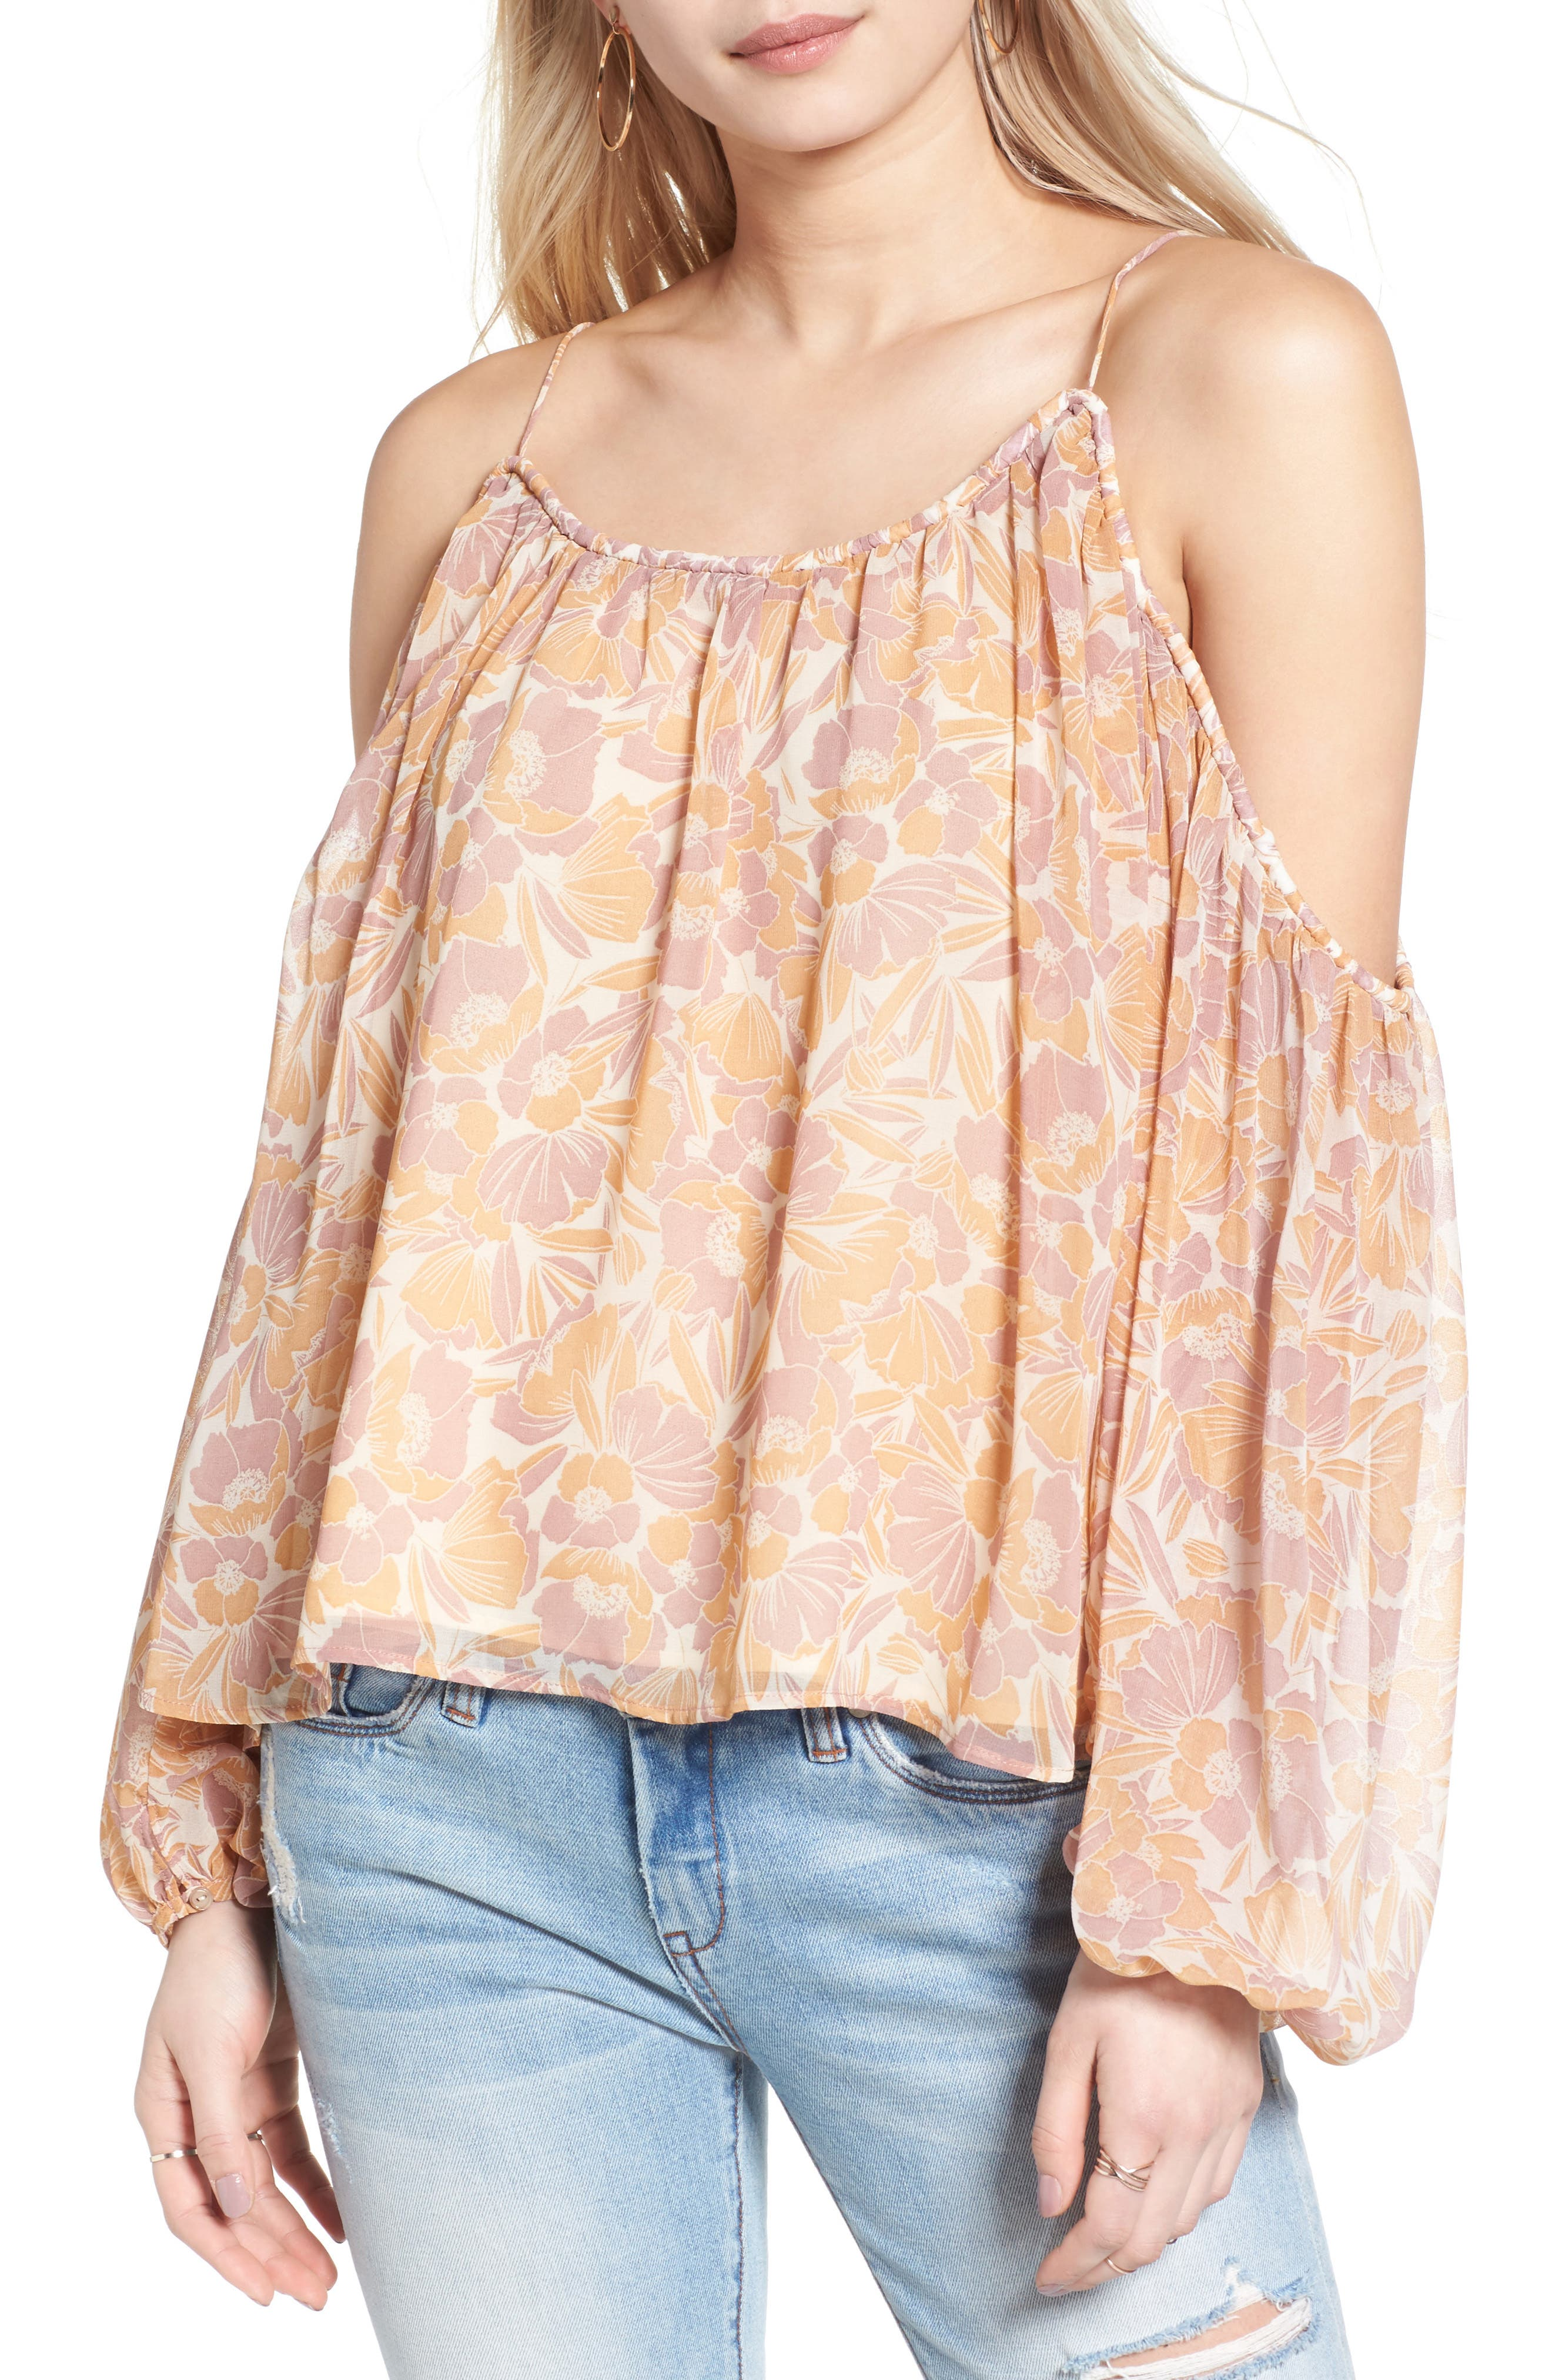 Alternate Image 1 Selected - ASTR the Label Josephine Cold Shoulder Top